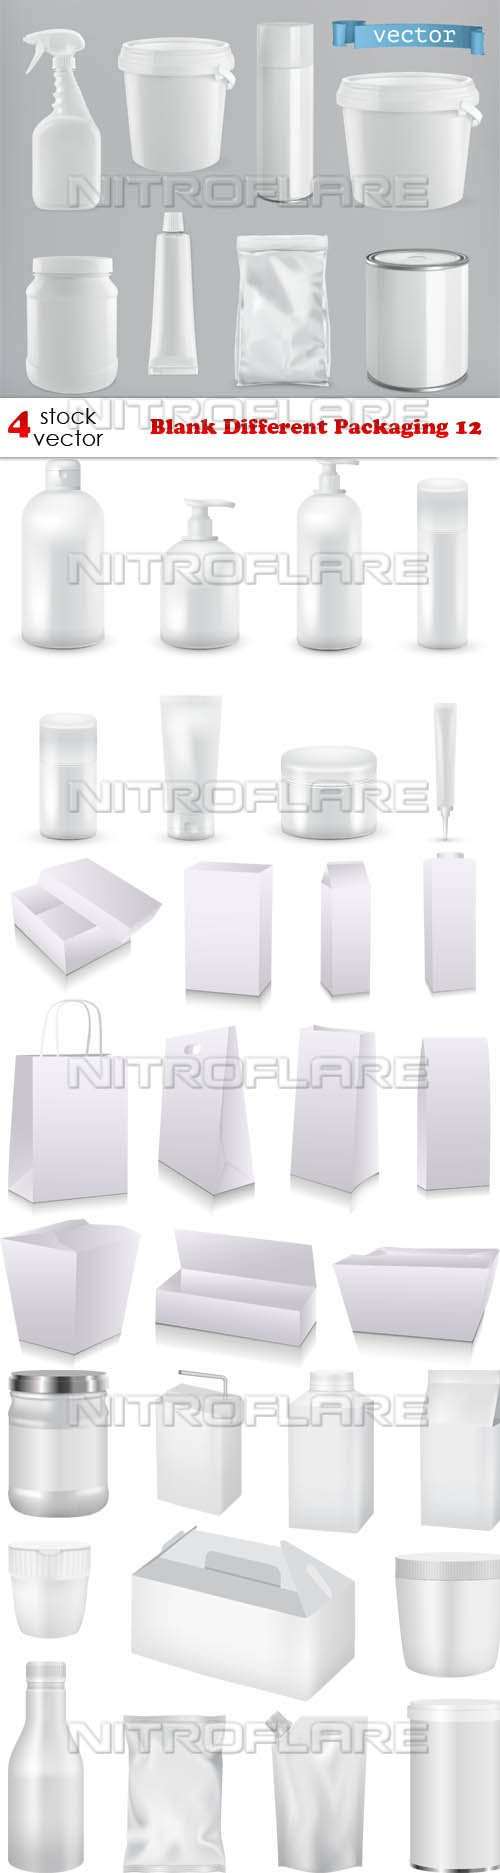 Vectors - Blank Different Packaging 12